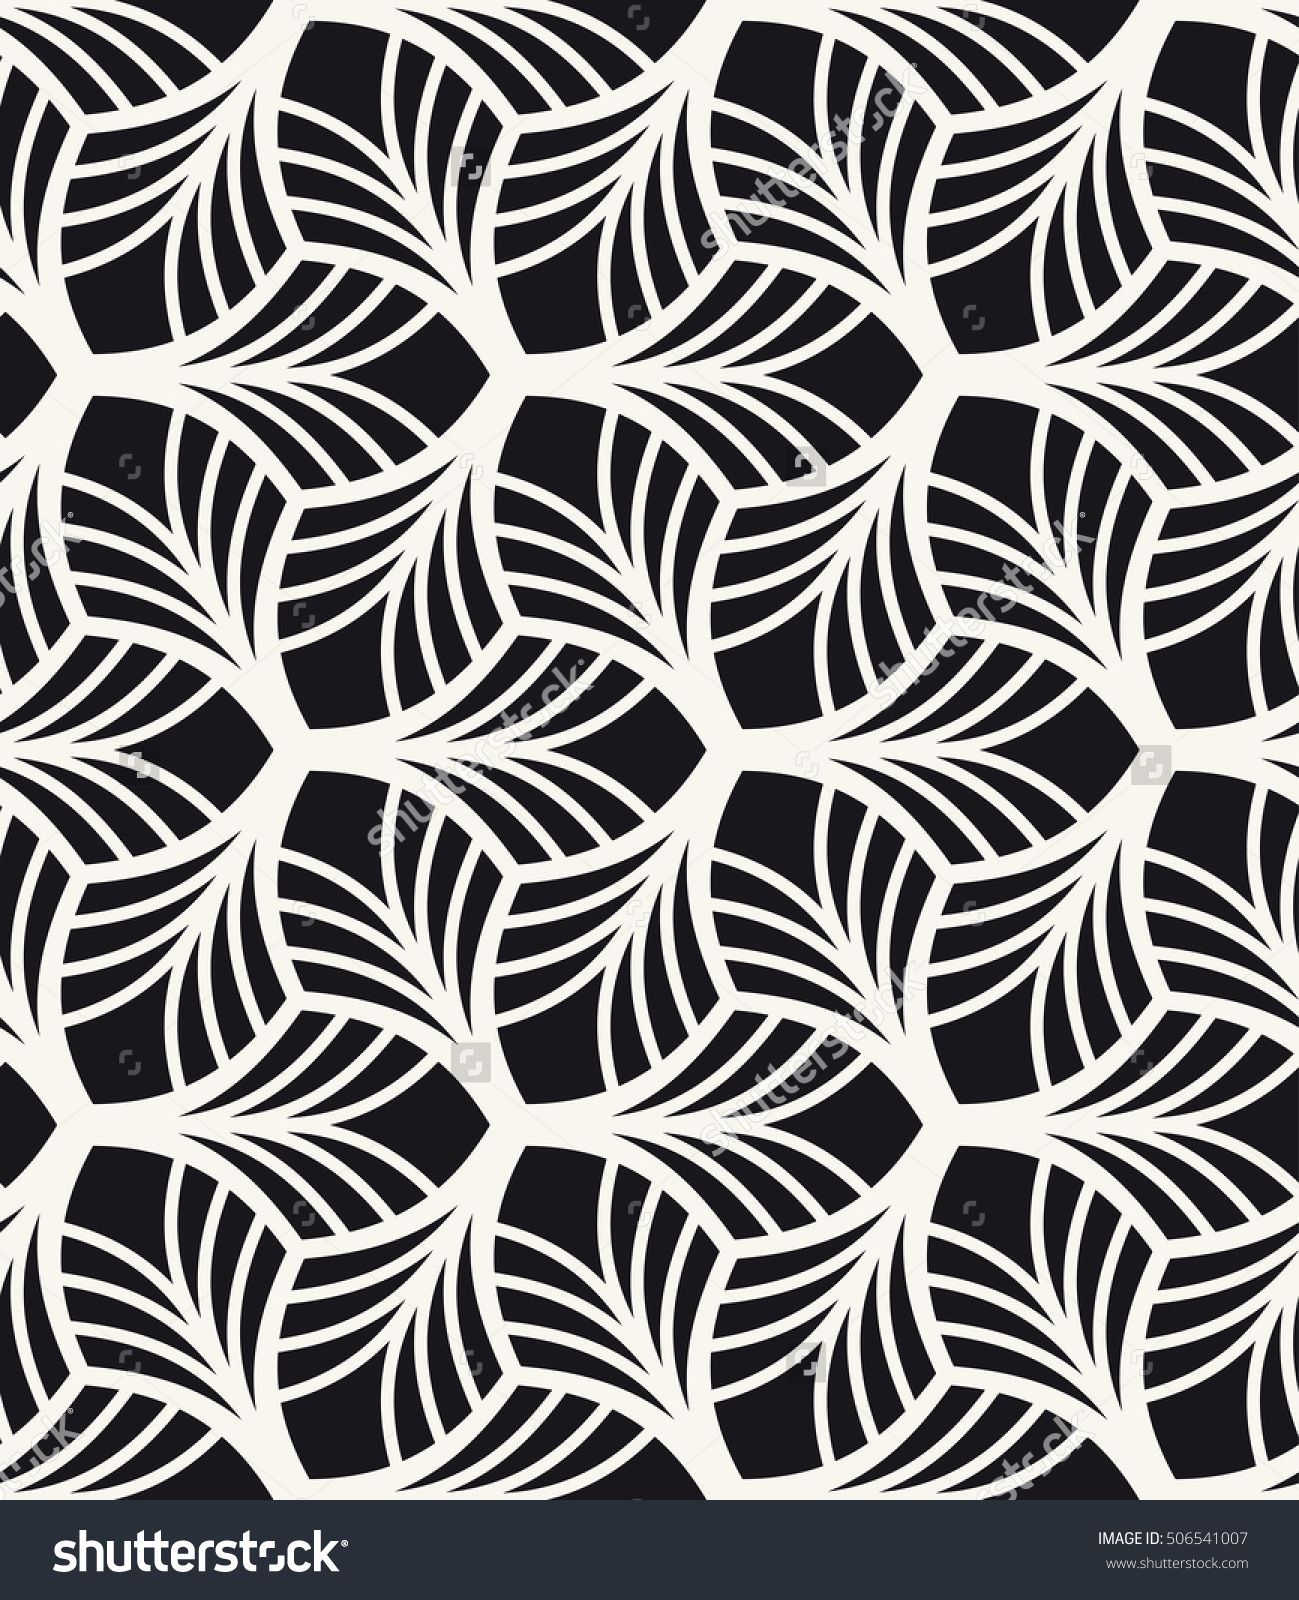 Monochrome Graphic Design Decorative Geometric Leaves Regular Floral Background With